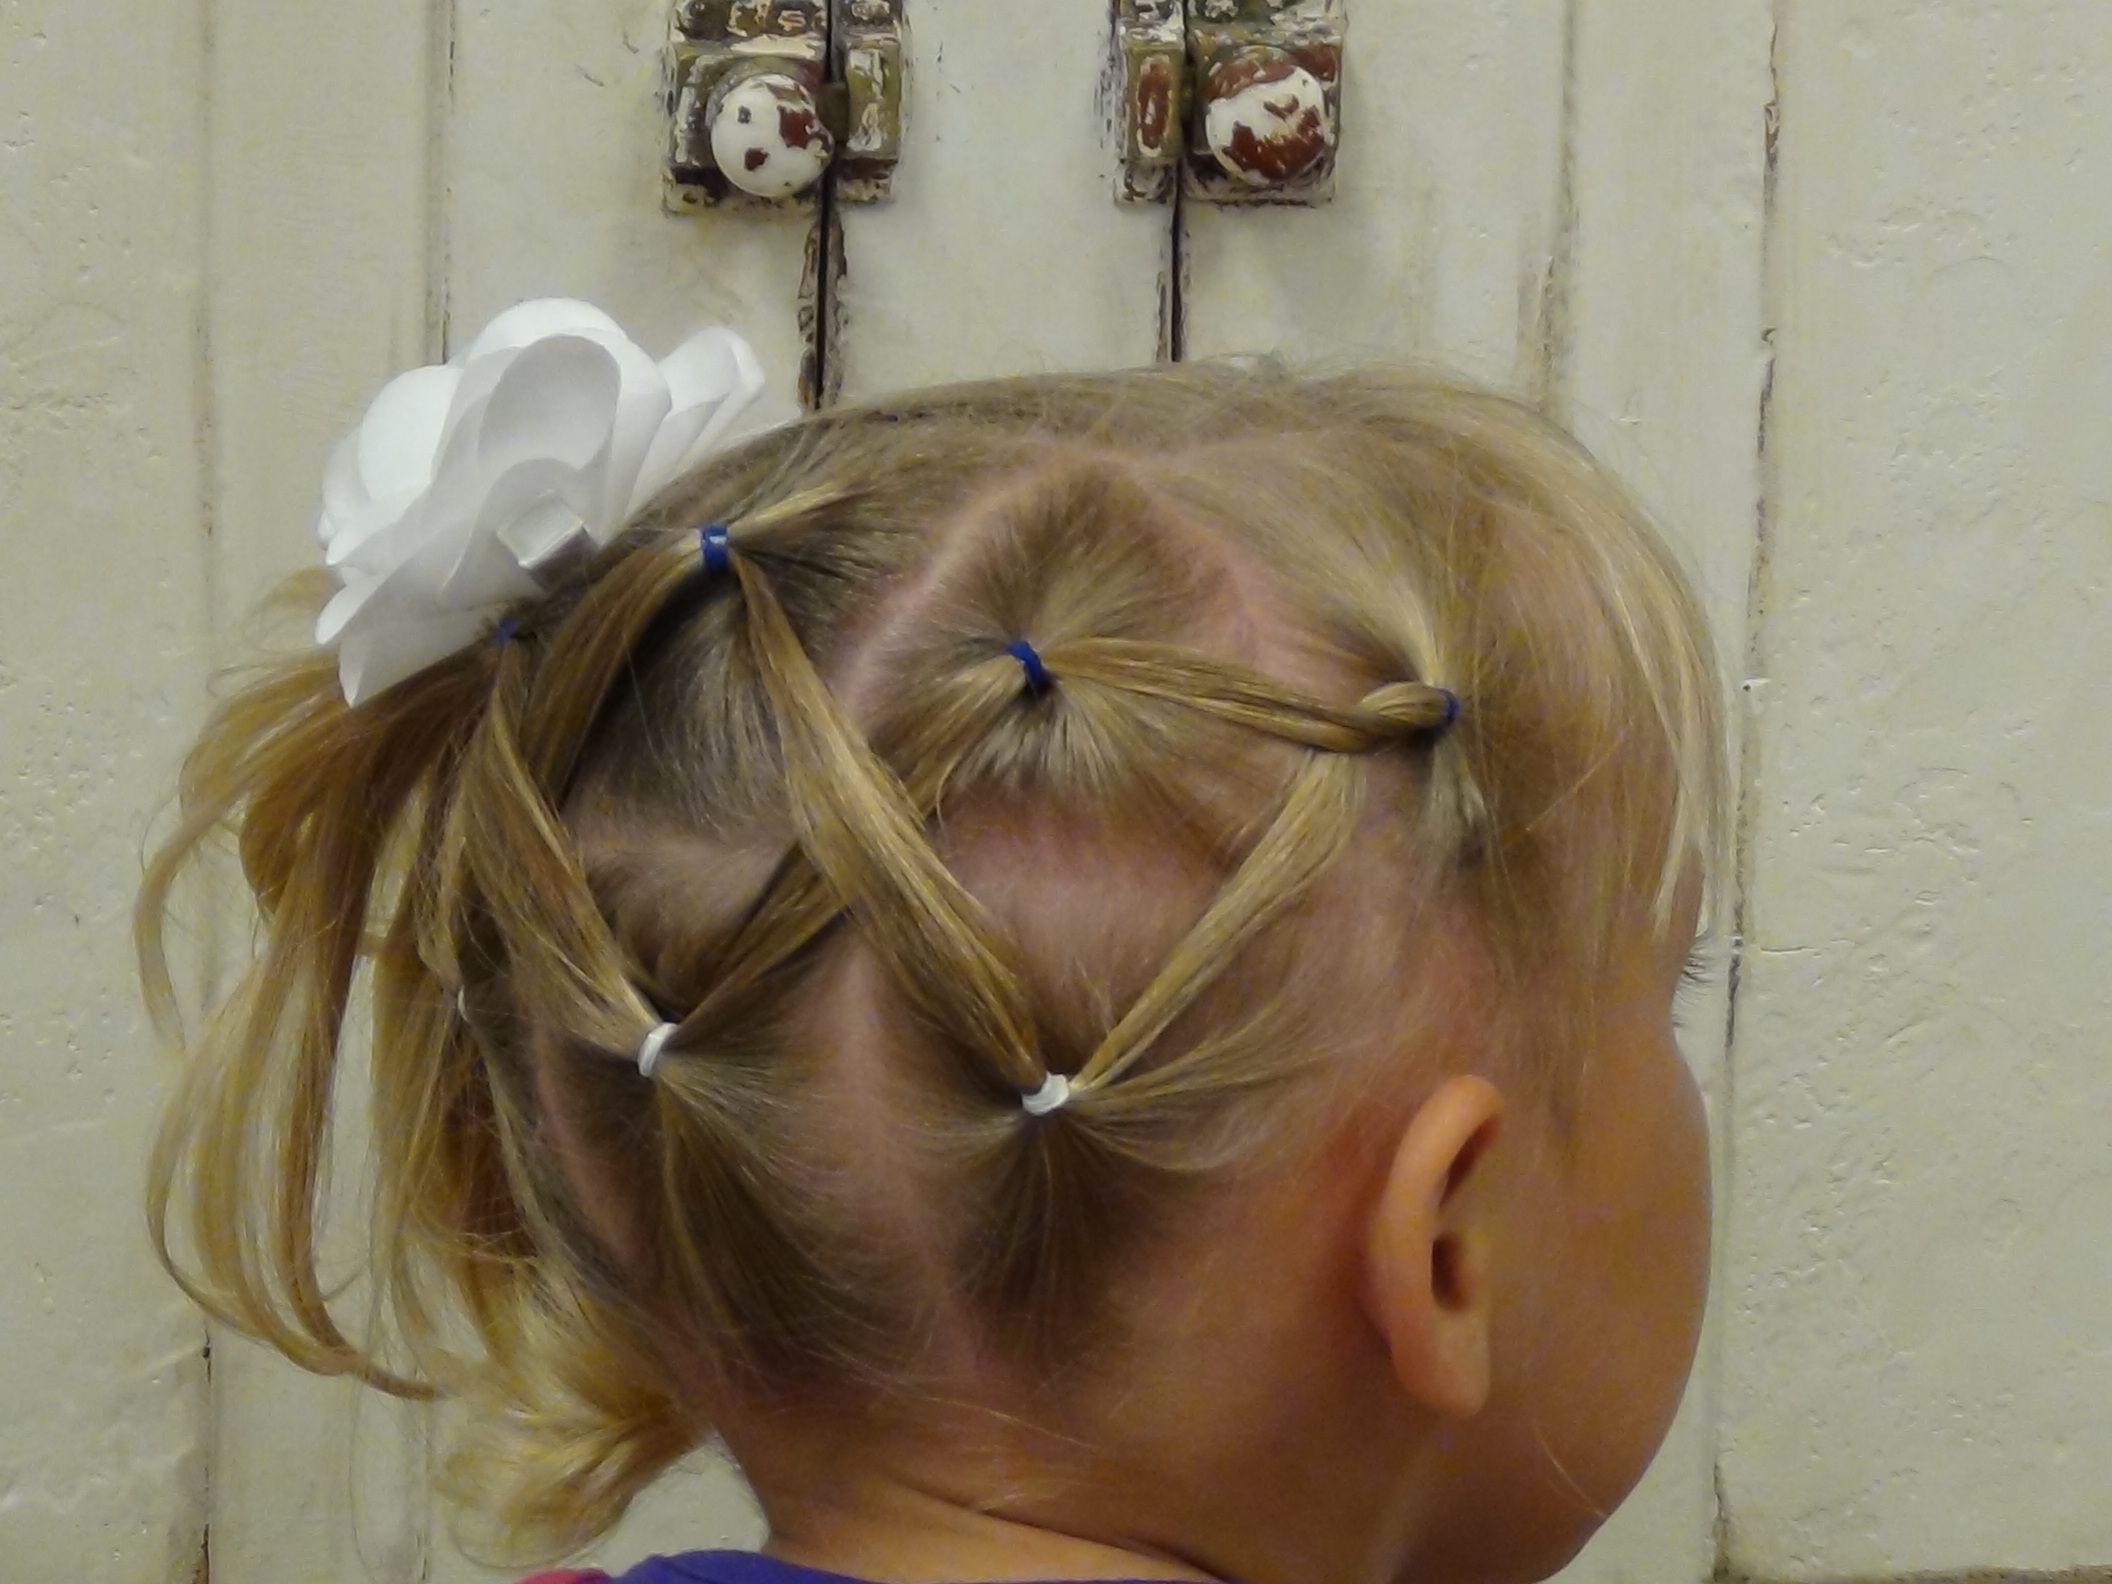 Horizontal Zig Zag Ponytail Boys And Girls Hair Styles Hair Styles Girl Hairstyles Kids Hairstyles